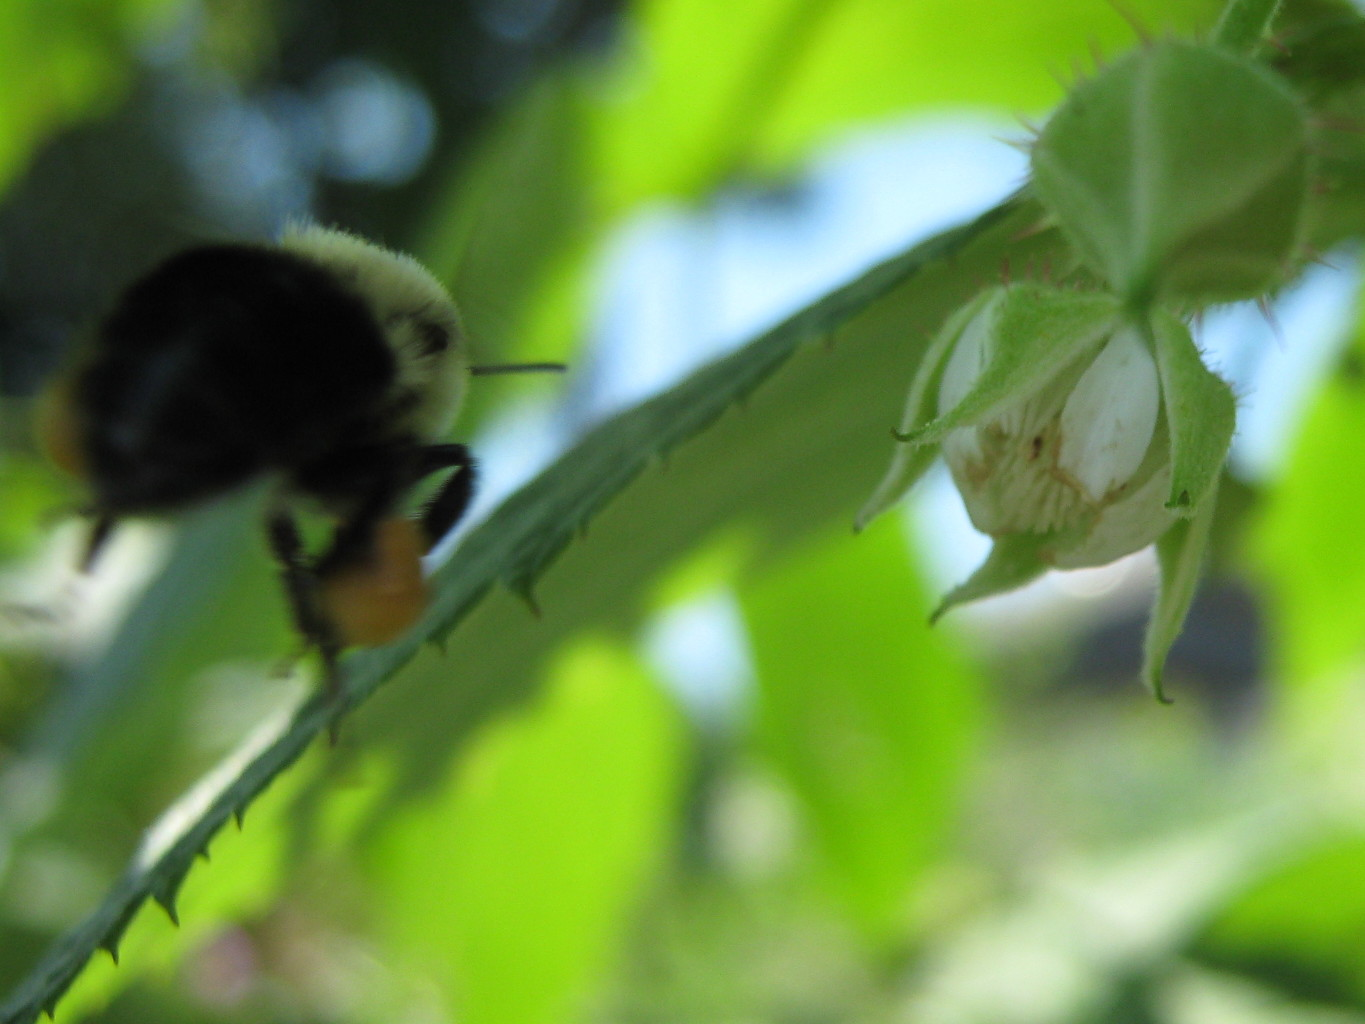 Bumblebee on a mission to raspberries